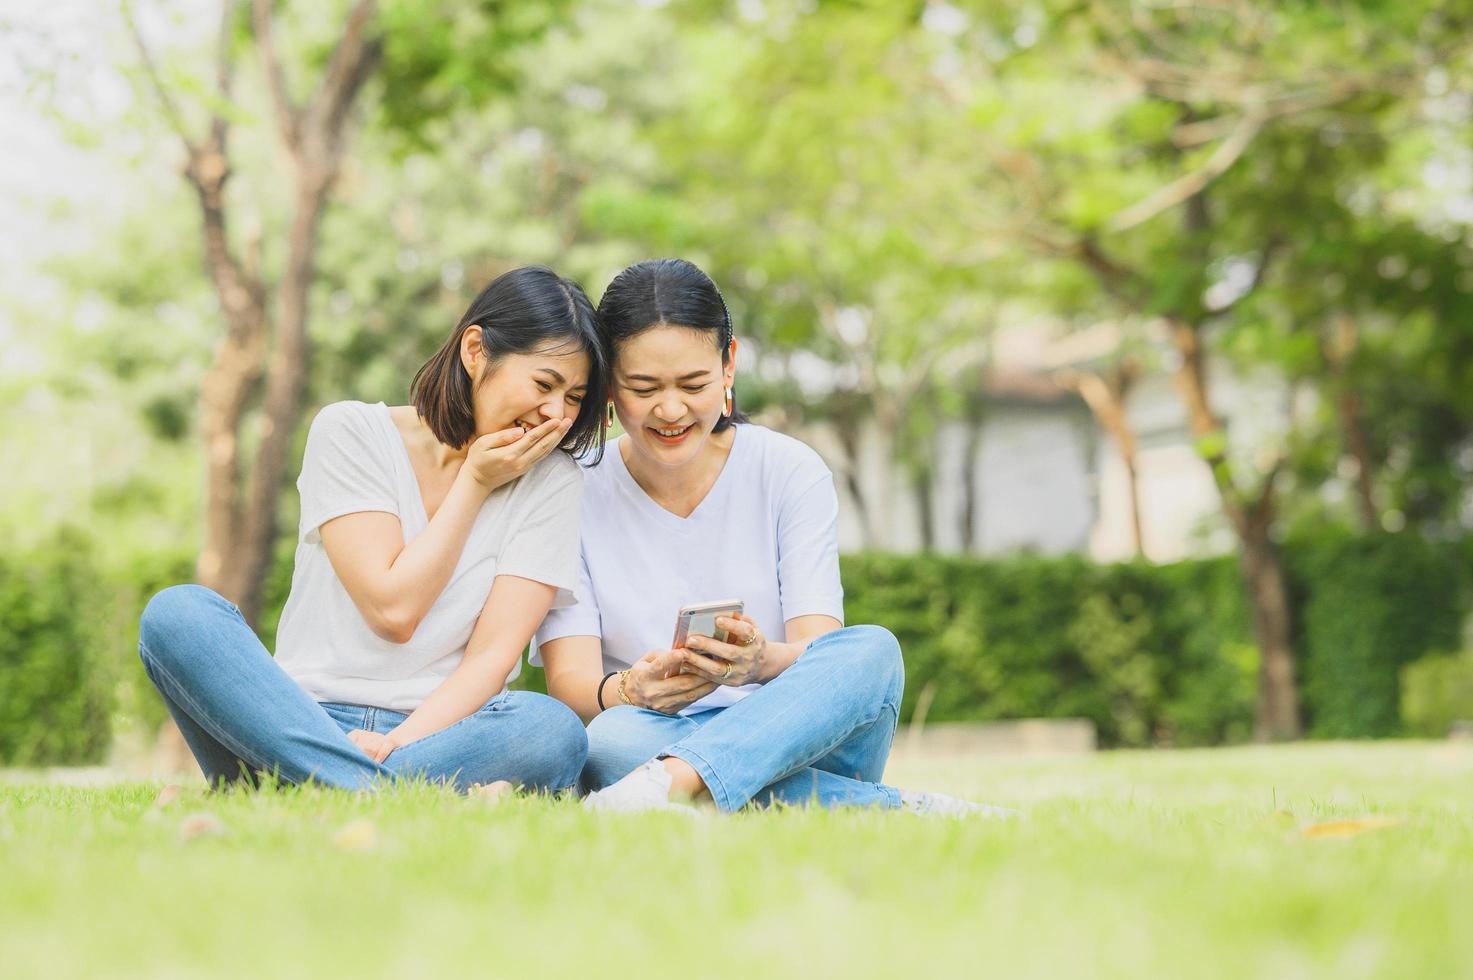 Asian women laughing while using smartphone outdoors photo